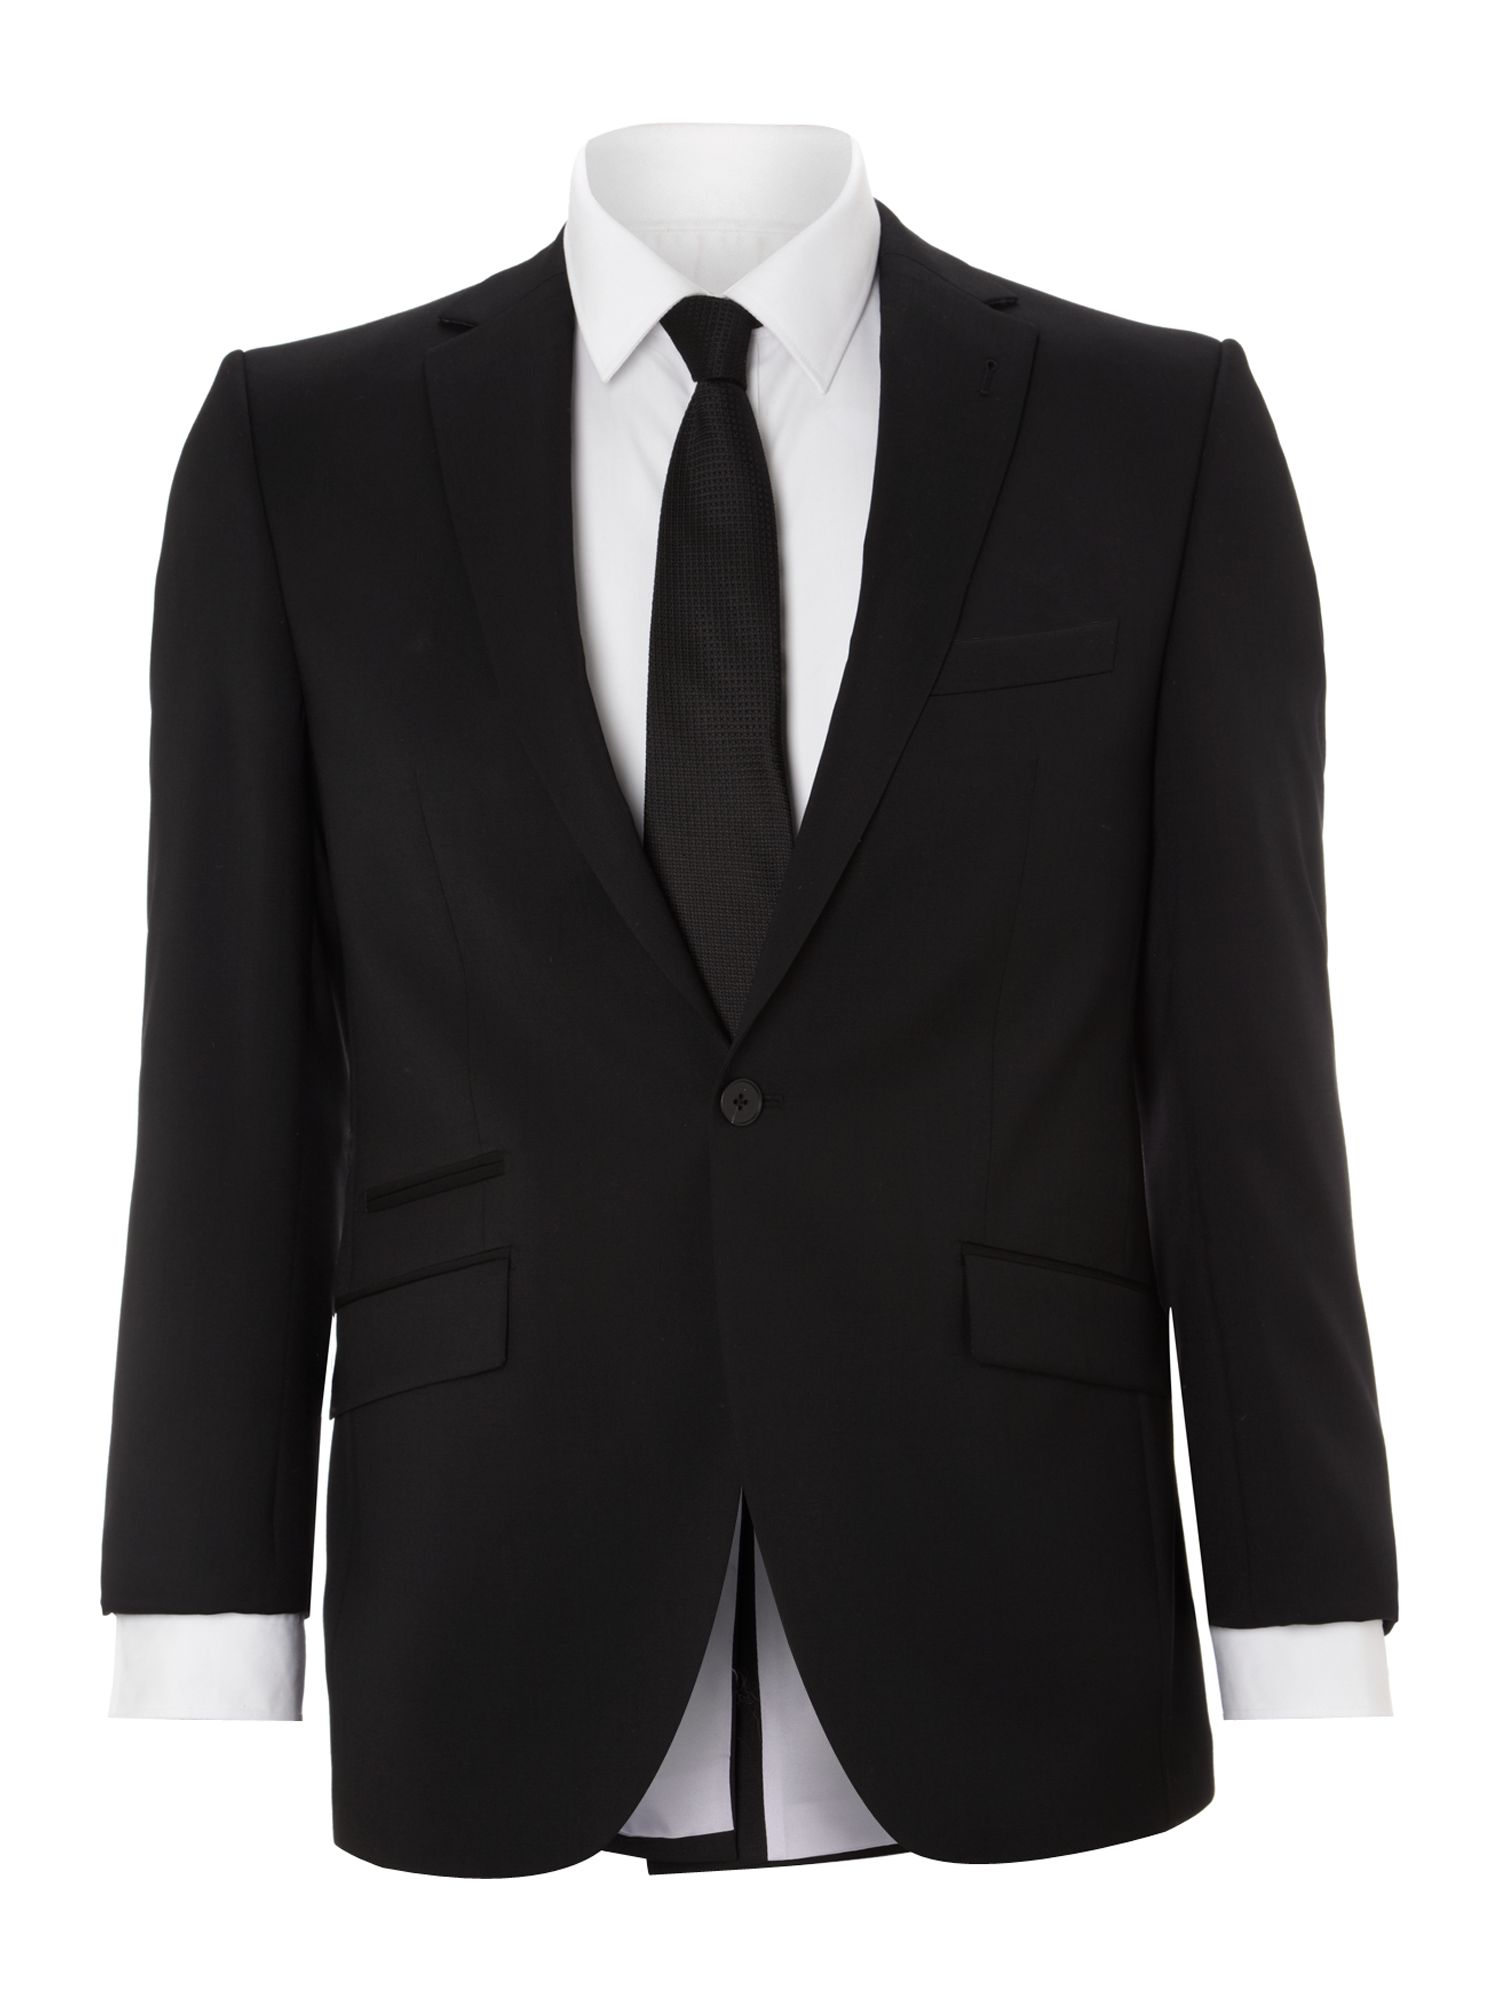 Kimberley regular fit suit